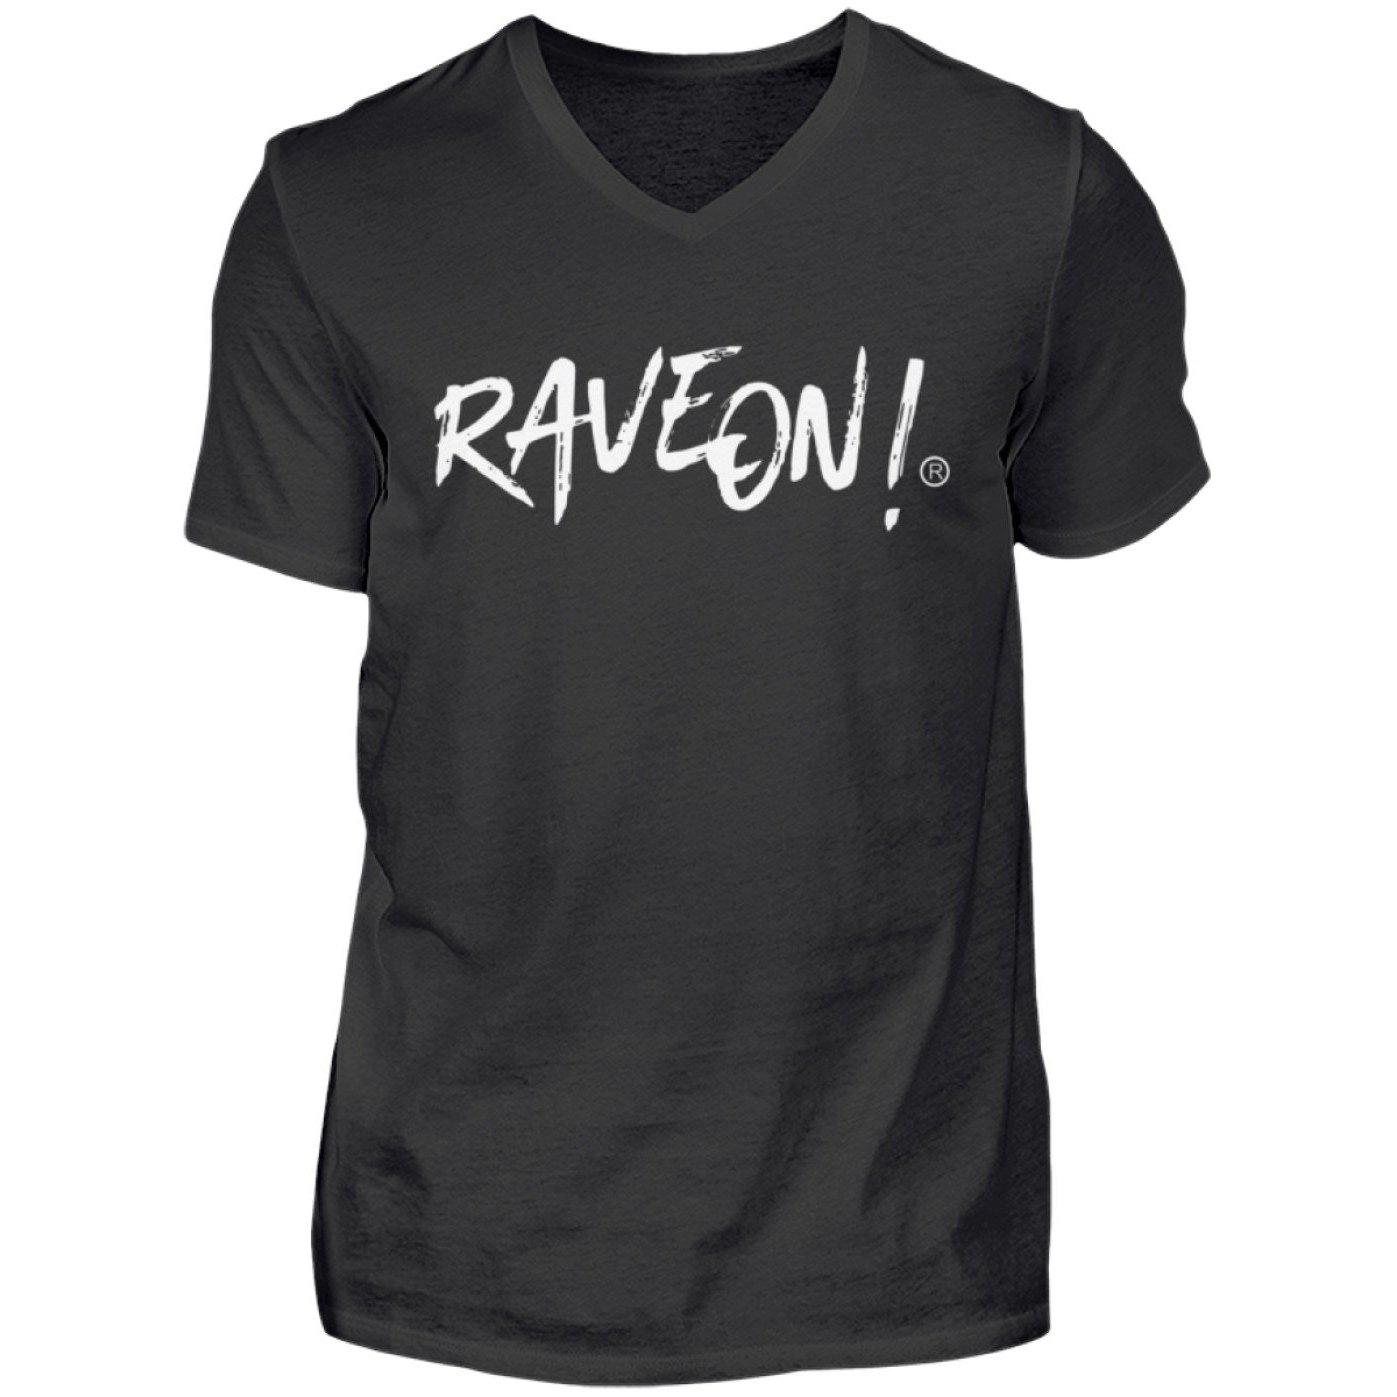 RAVE ON!® Side Black Collection - Herren V-Neck Shirt V-Neck Herrenshirt Schwarz / S - Rave On!® der Club & Techno Szene Shop für Coole Junge Mode Streetwear Style & Fashion Outfits + Sexy Festival 420 Stuff